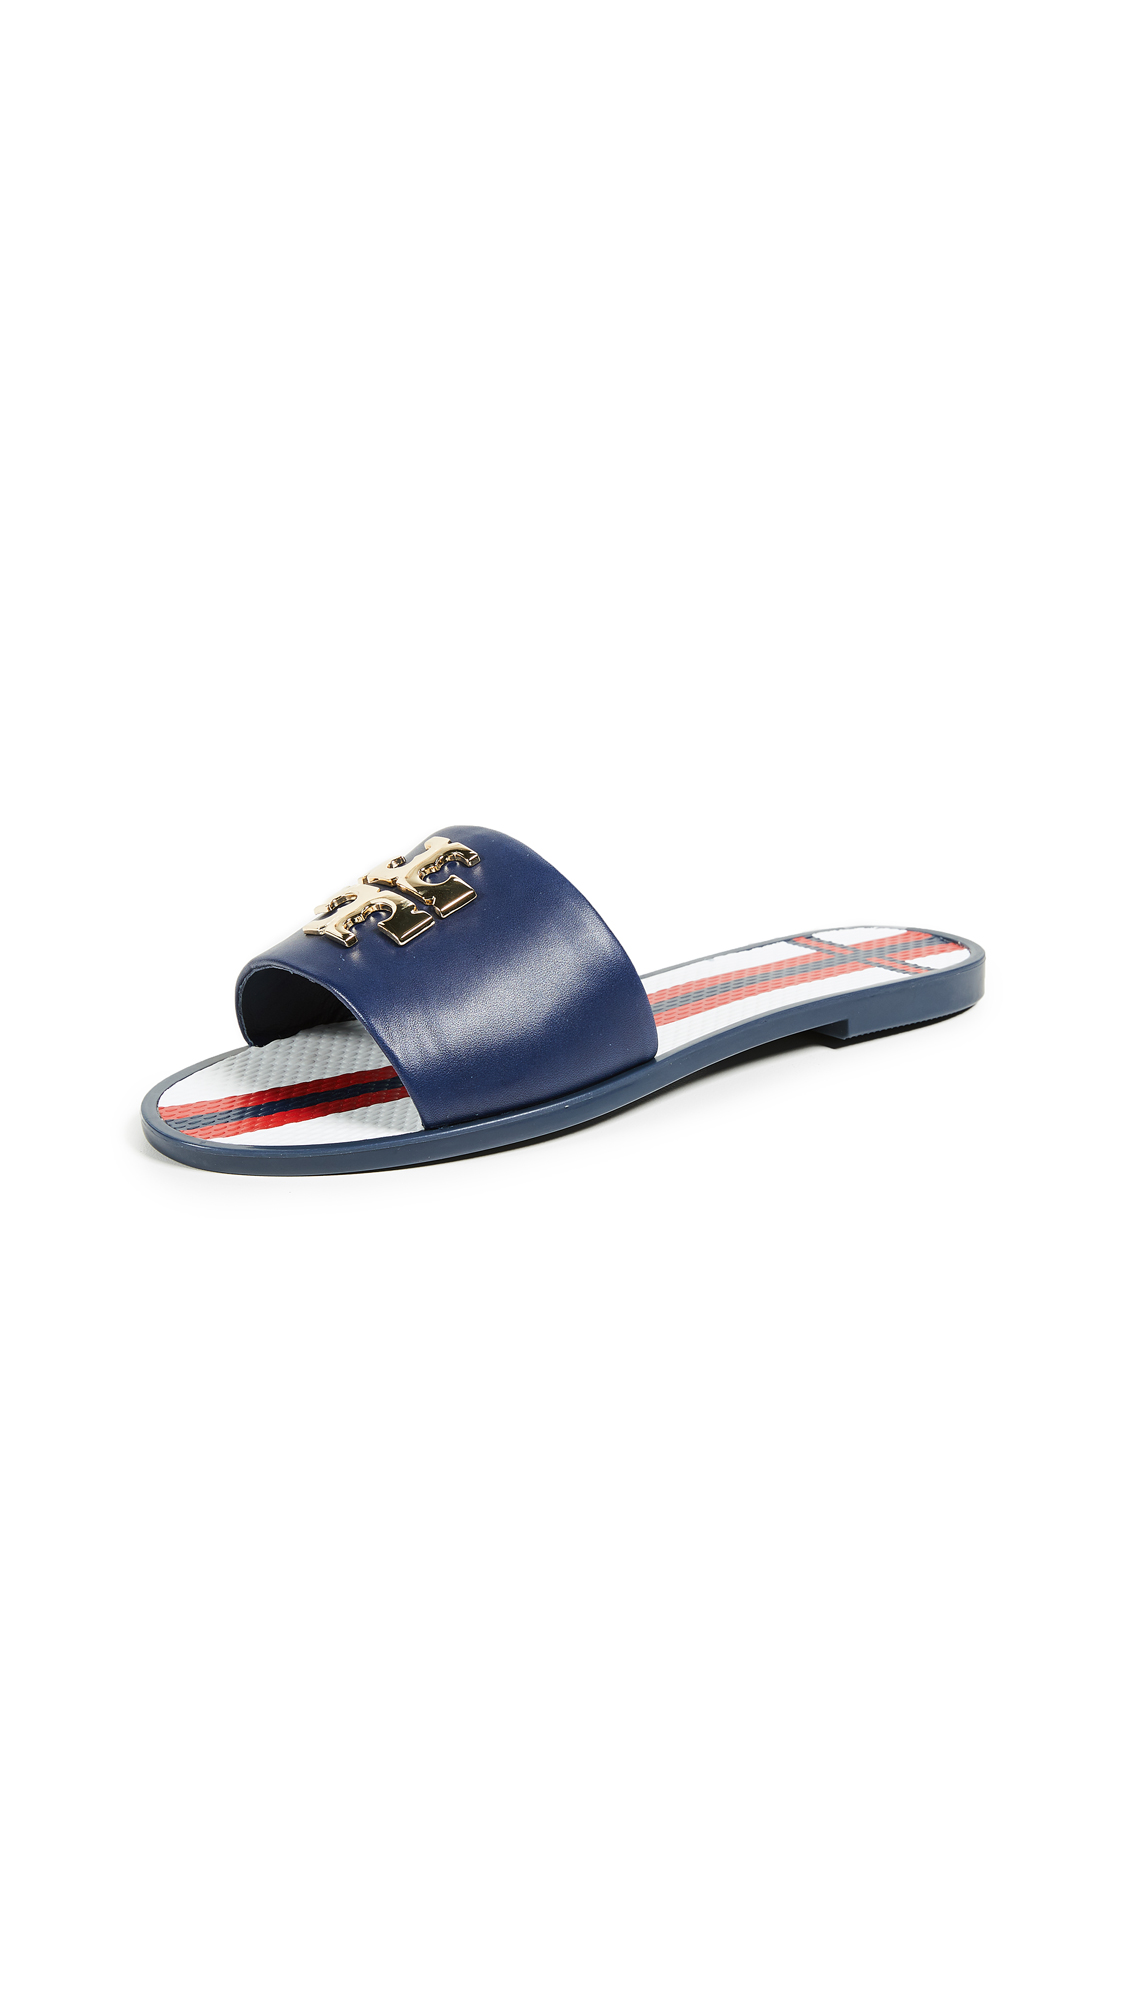 Photo of Tory Burch Logo Jelly Slides online shoes sales